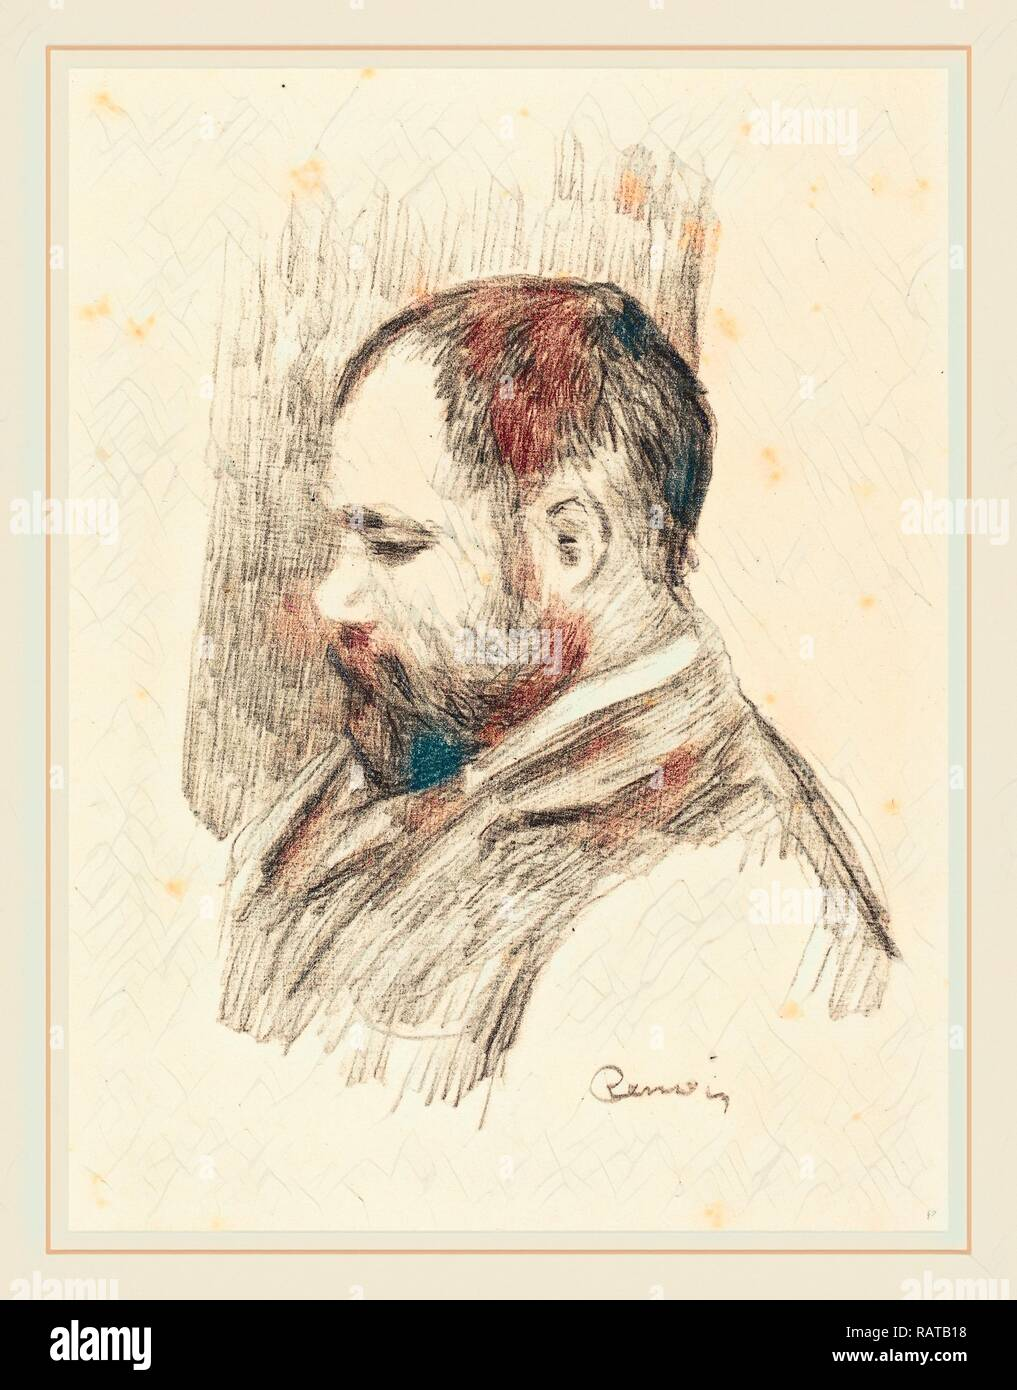 Auguste Renoir, Ambroise Vollard, French, 1841-1919, 1904, lithograph. Reimagined by Gibon. Classic art with a modern reimagined - Stock Image